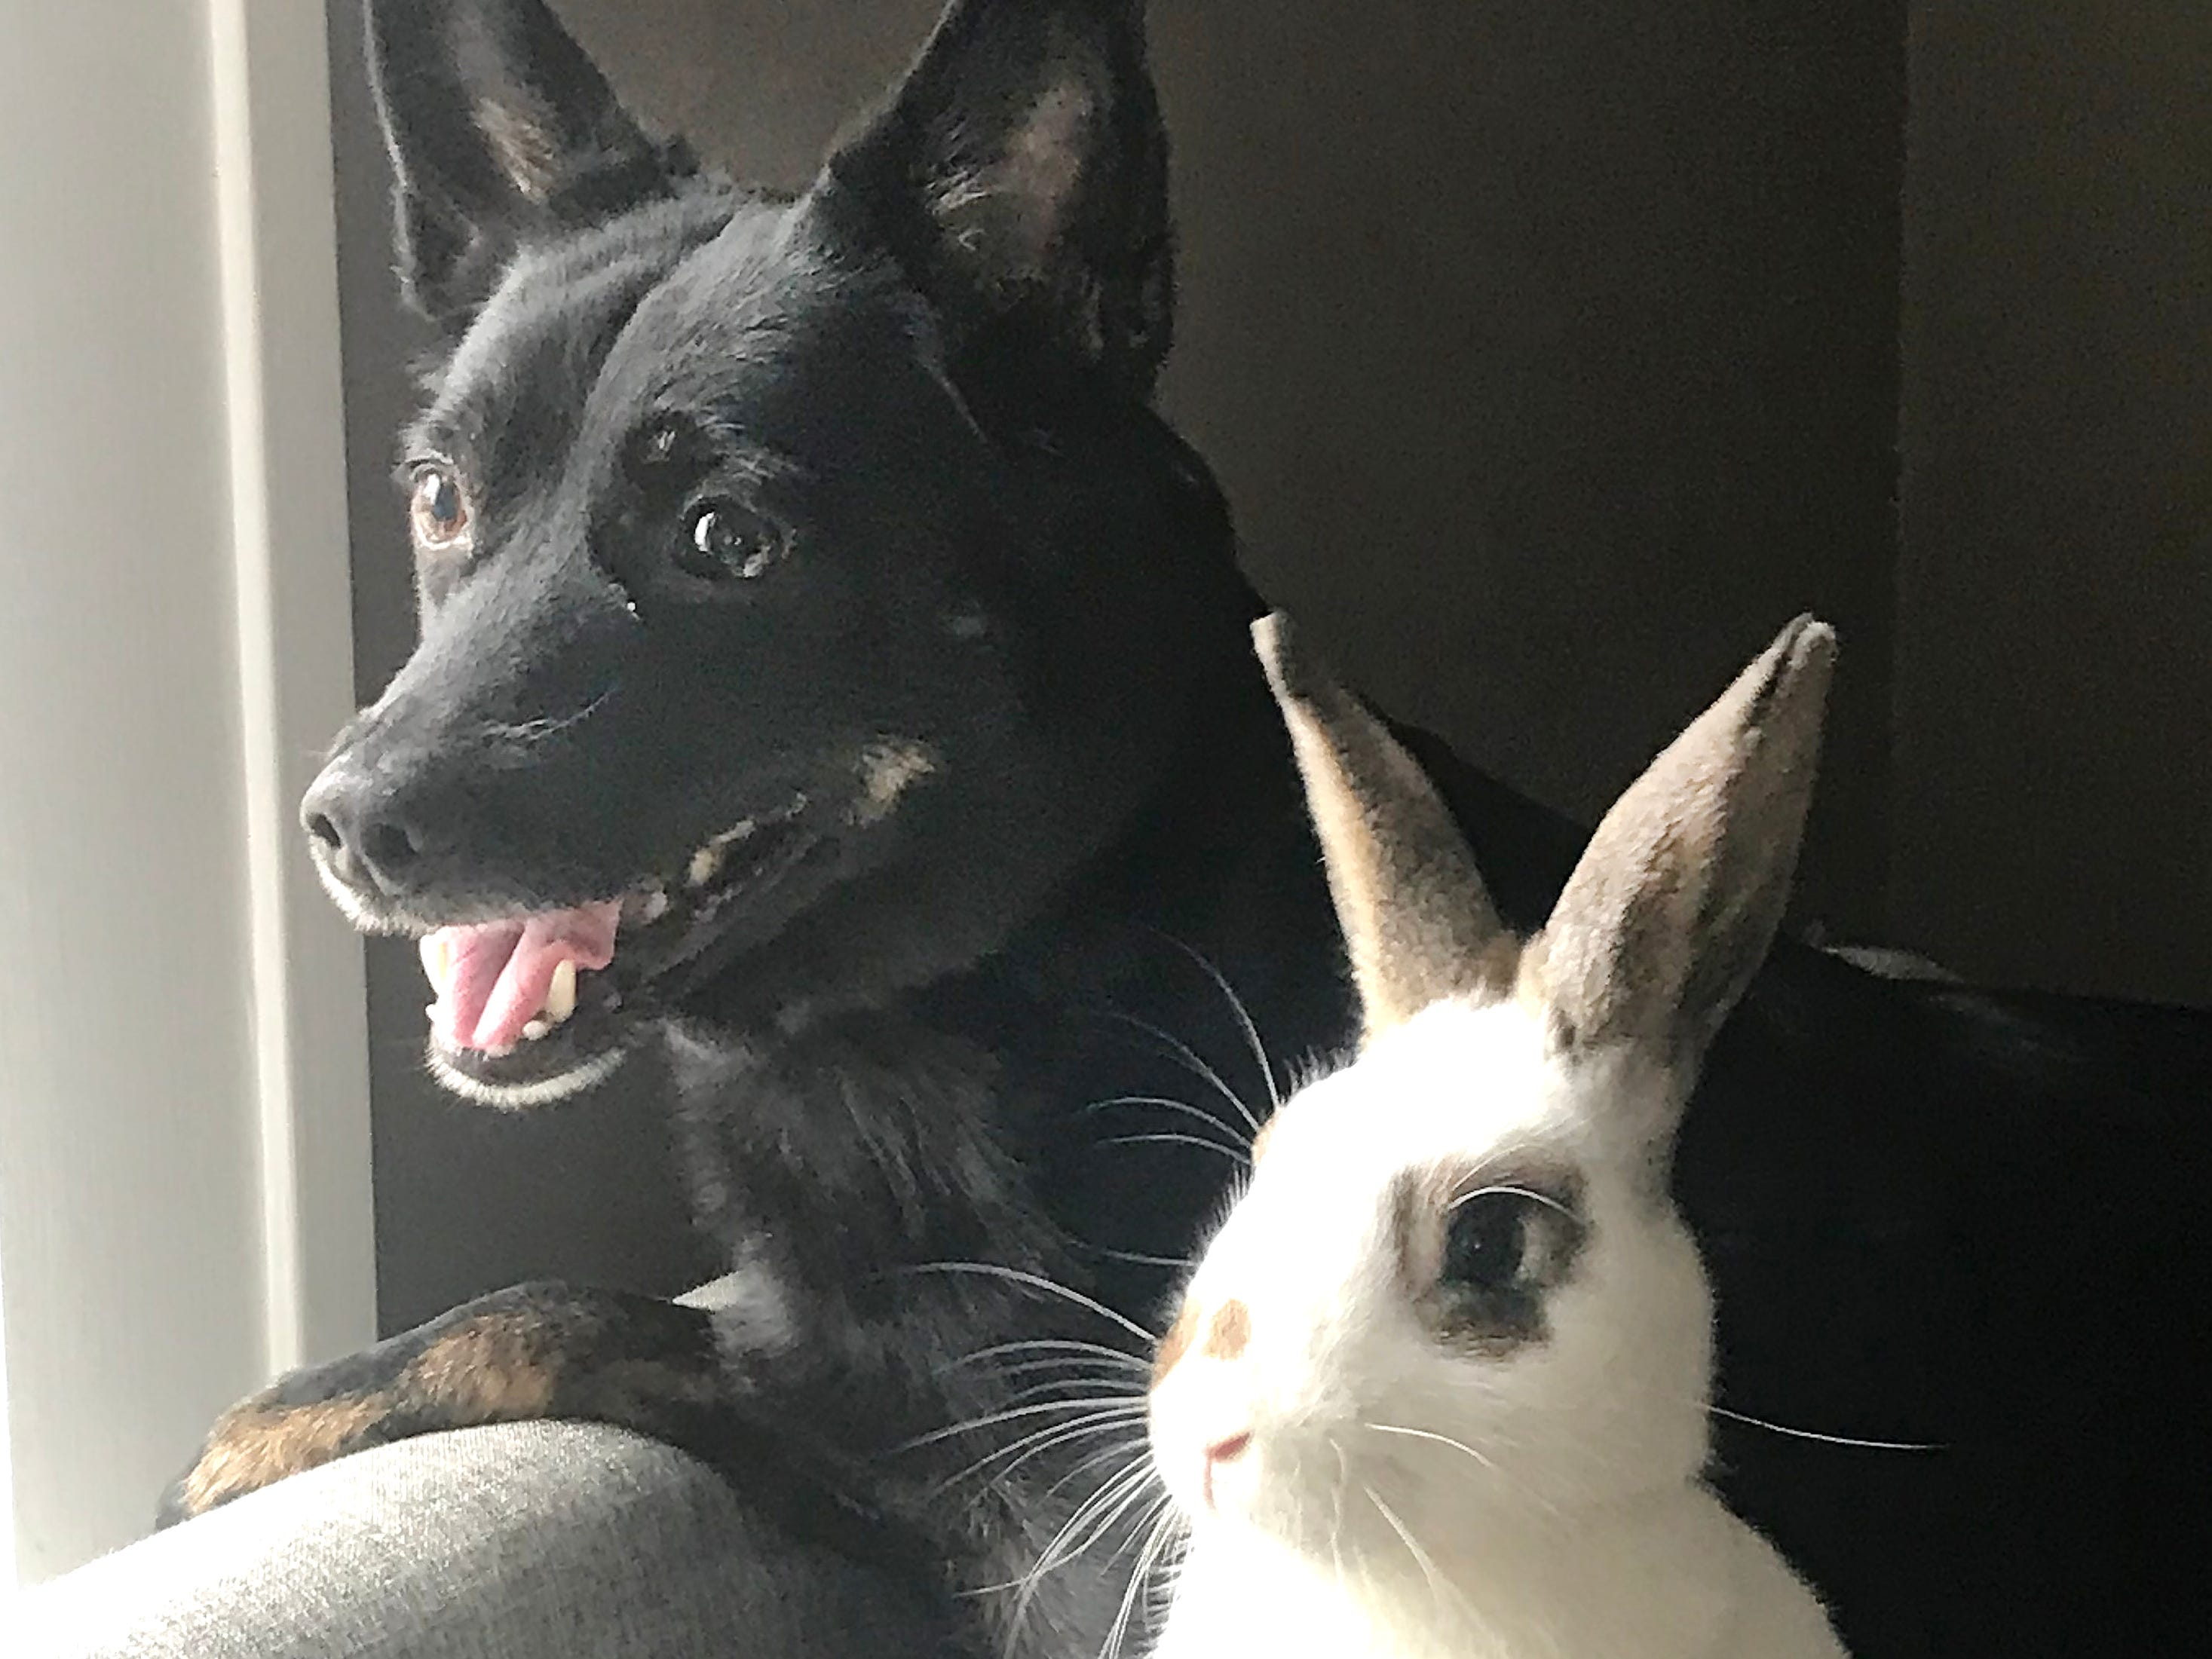 An 11-year old miniature pinscher mix and a 5-month old bunny stare out the window together after meeting for the first time over the Thanksgiving holiday in Rochester, Michigan.